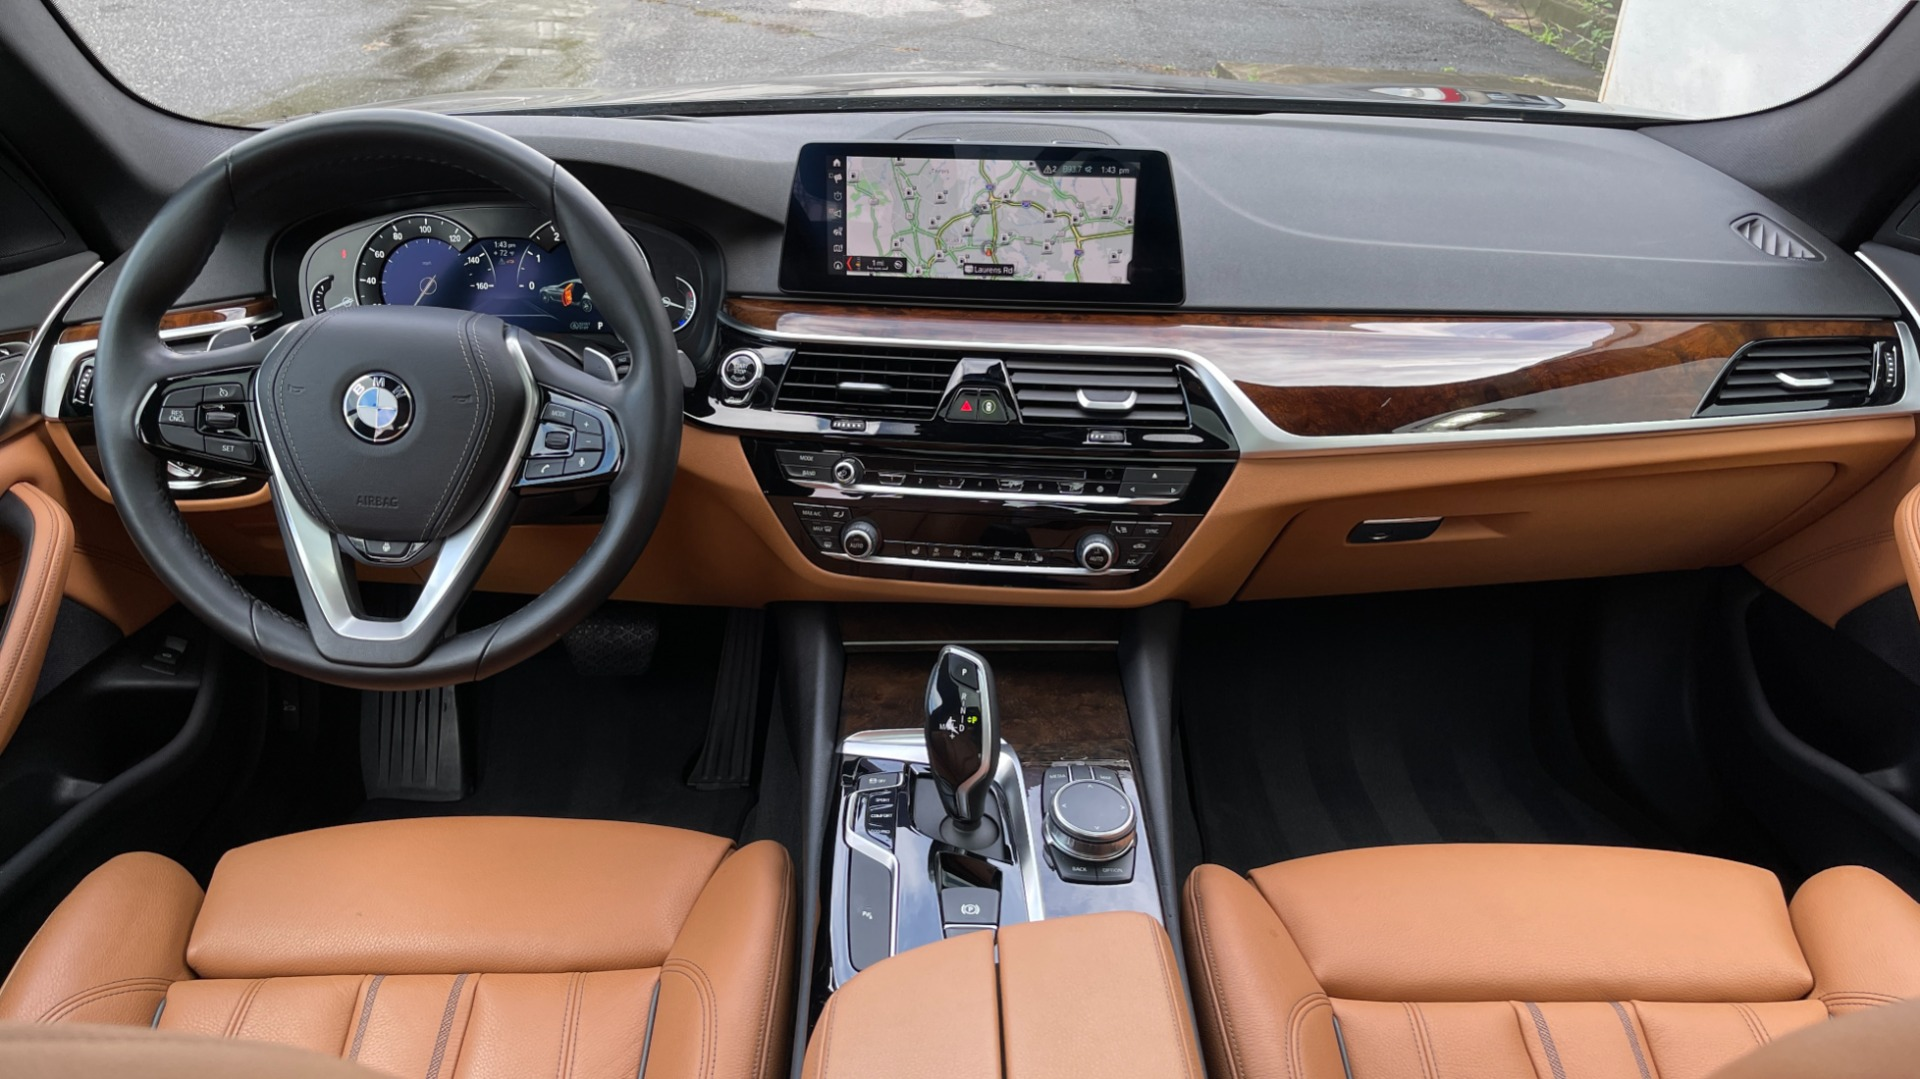 Used 2019 BMW 5 SERIES 530I XDRIVE / CONV PKG / PDC / NAV / SUNROOF / HTD STS / REARIEW for sale $39,595 at Formula Imports in Charlotte NC 28227 52